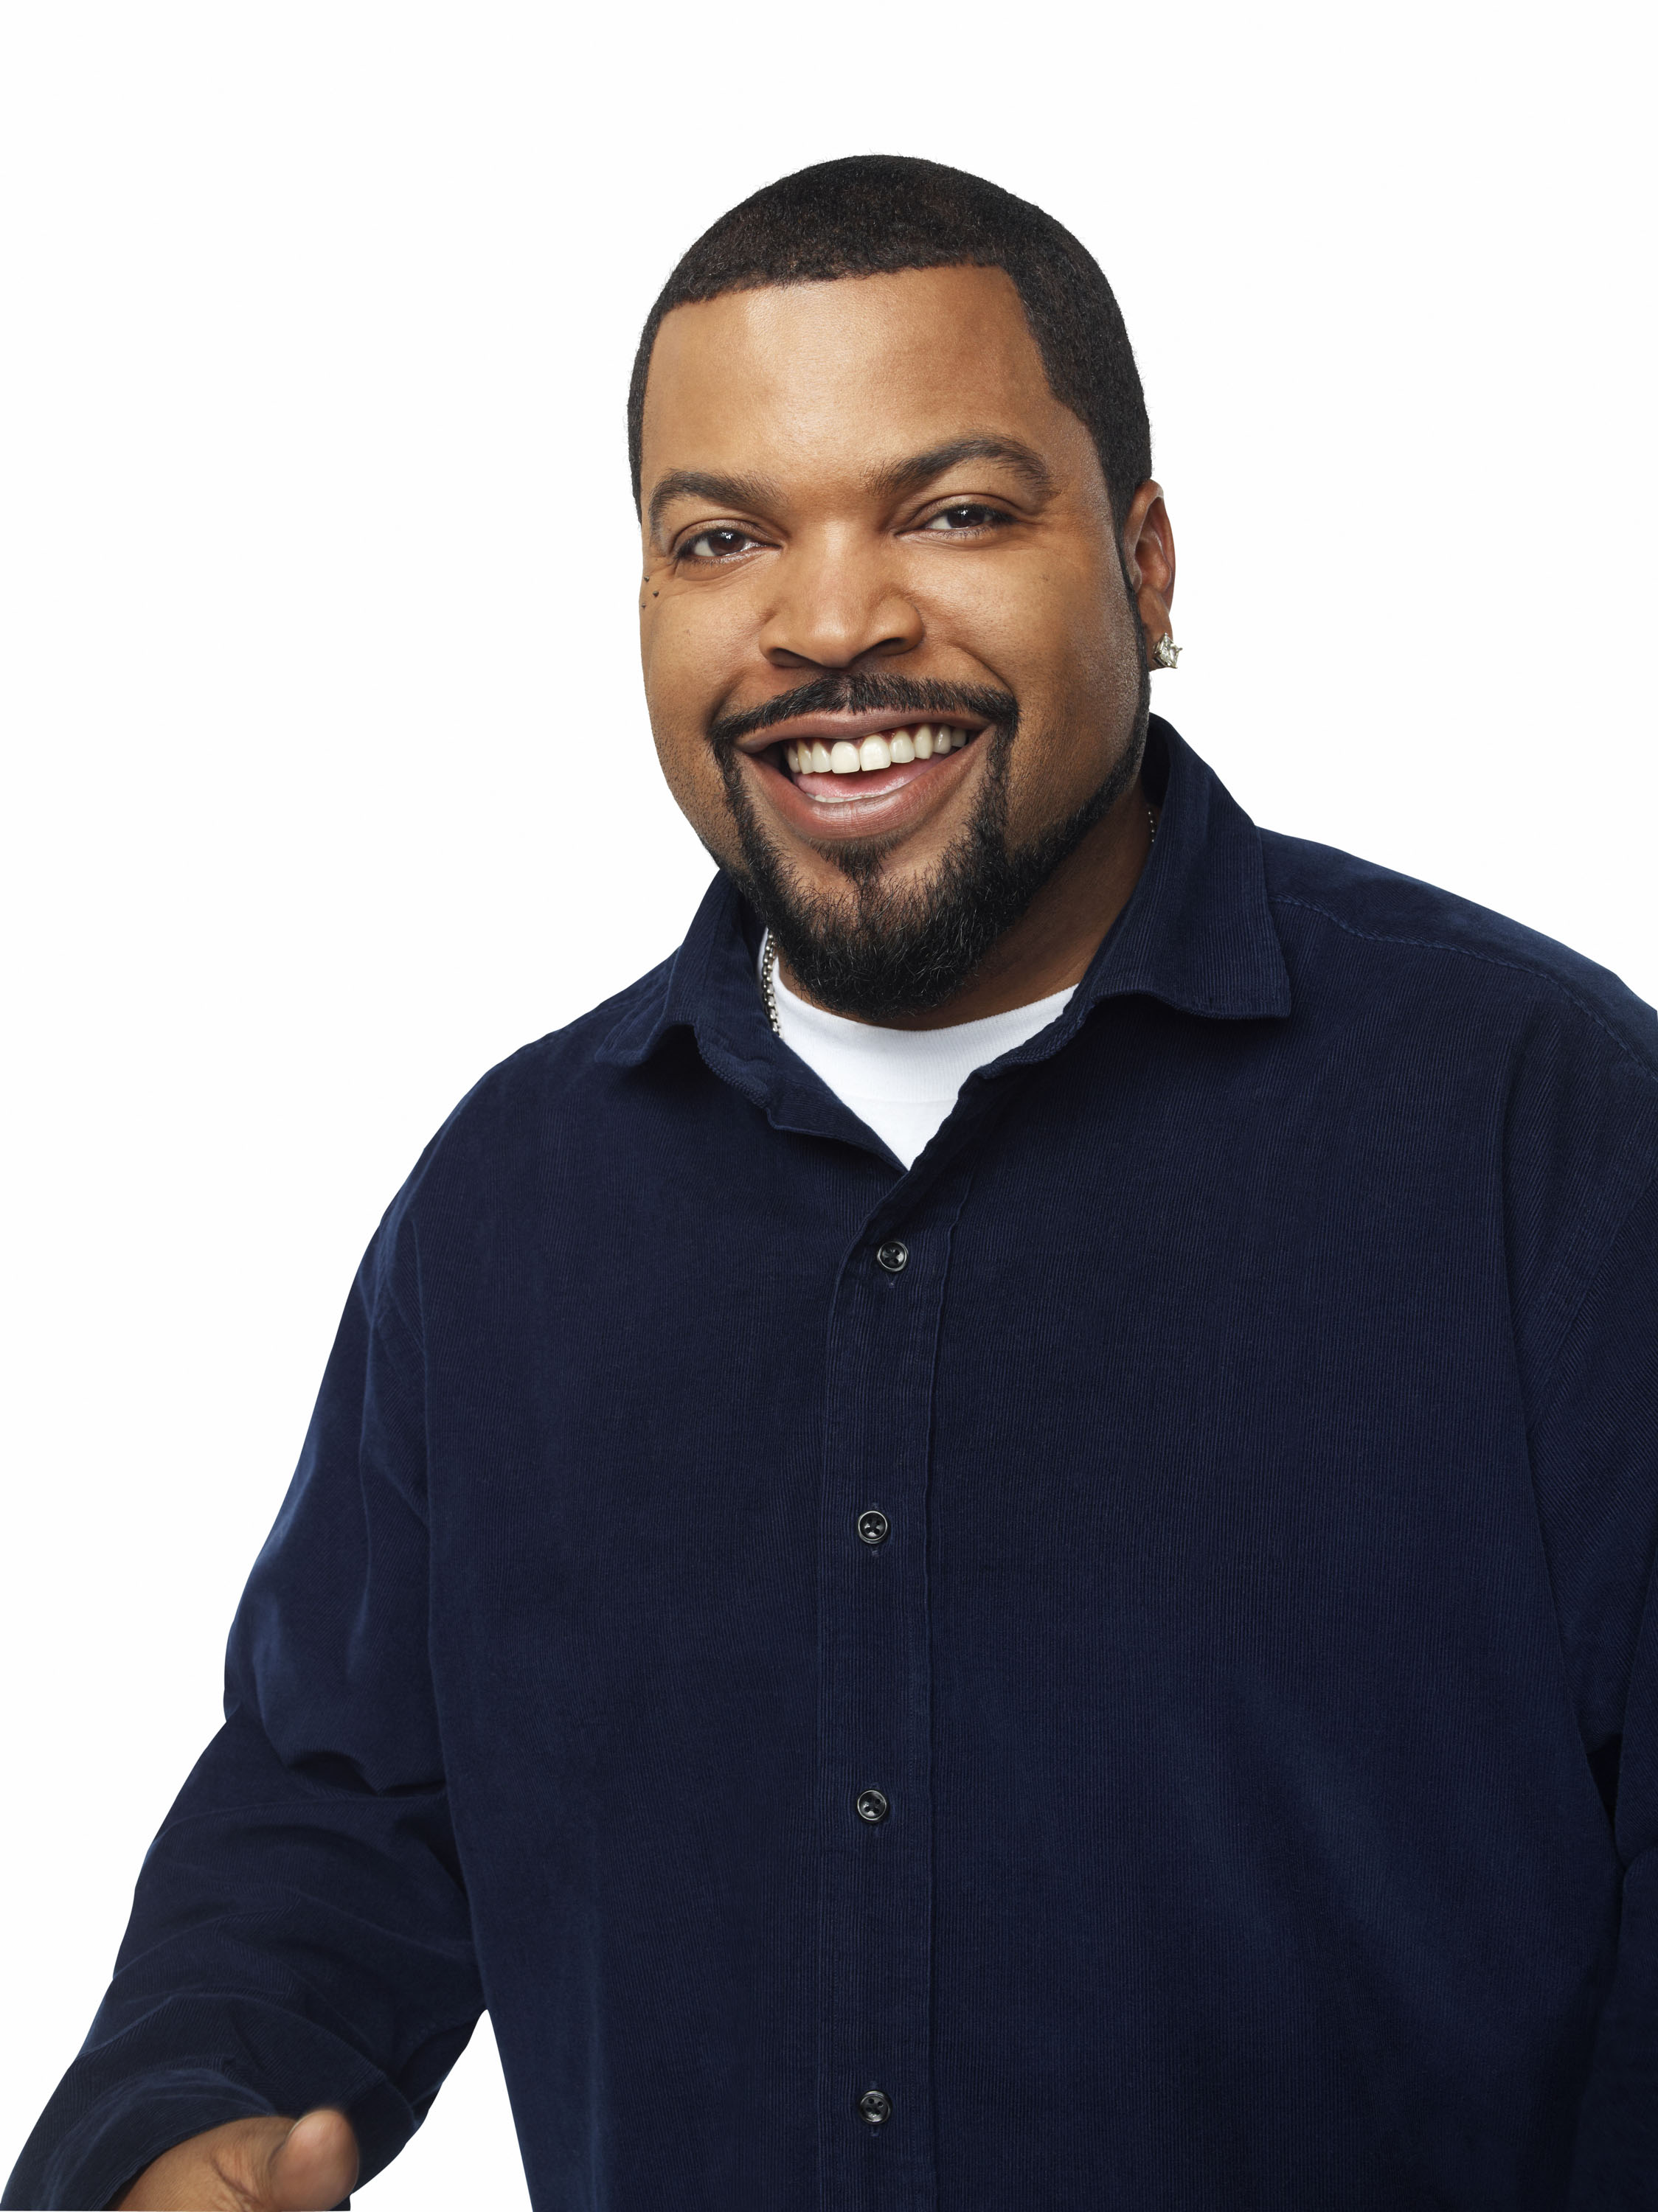 Ice Cube photo, pics, wallpaper - photo #